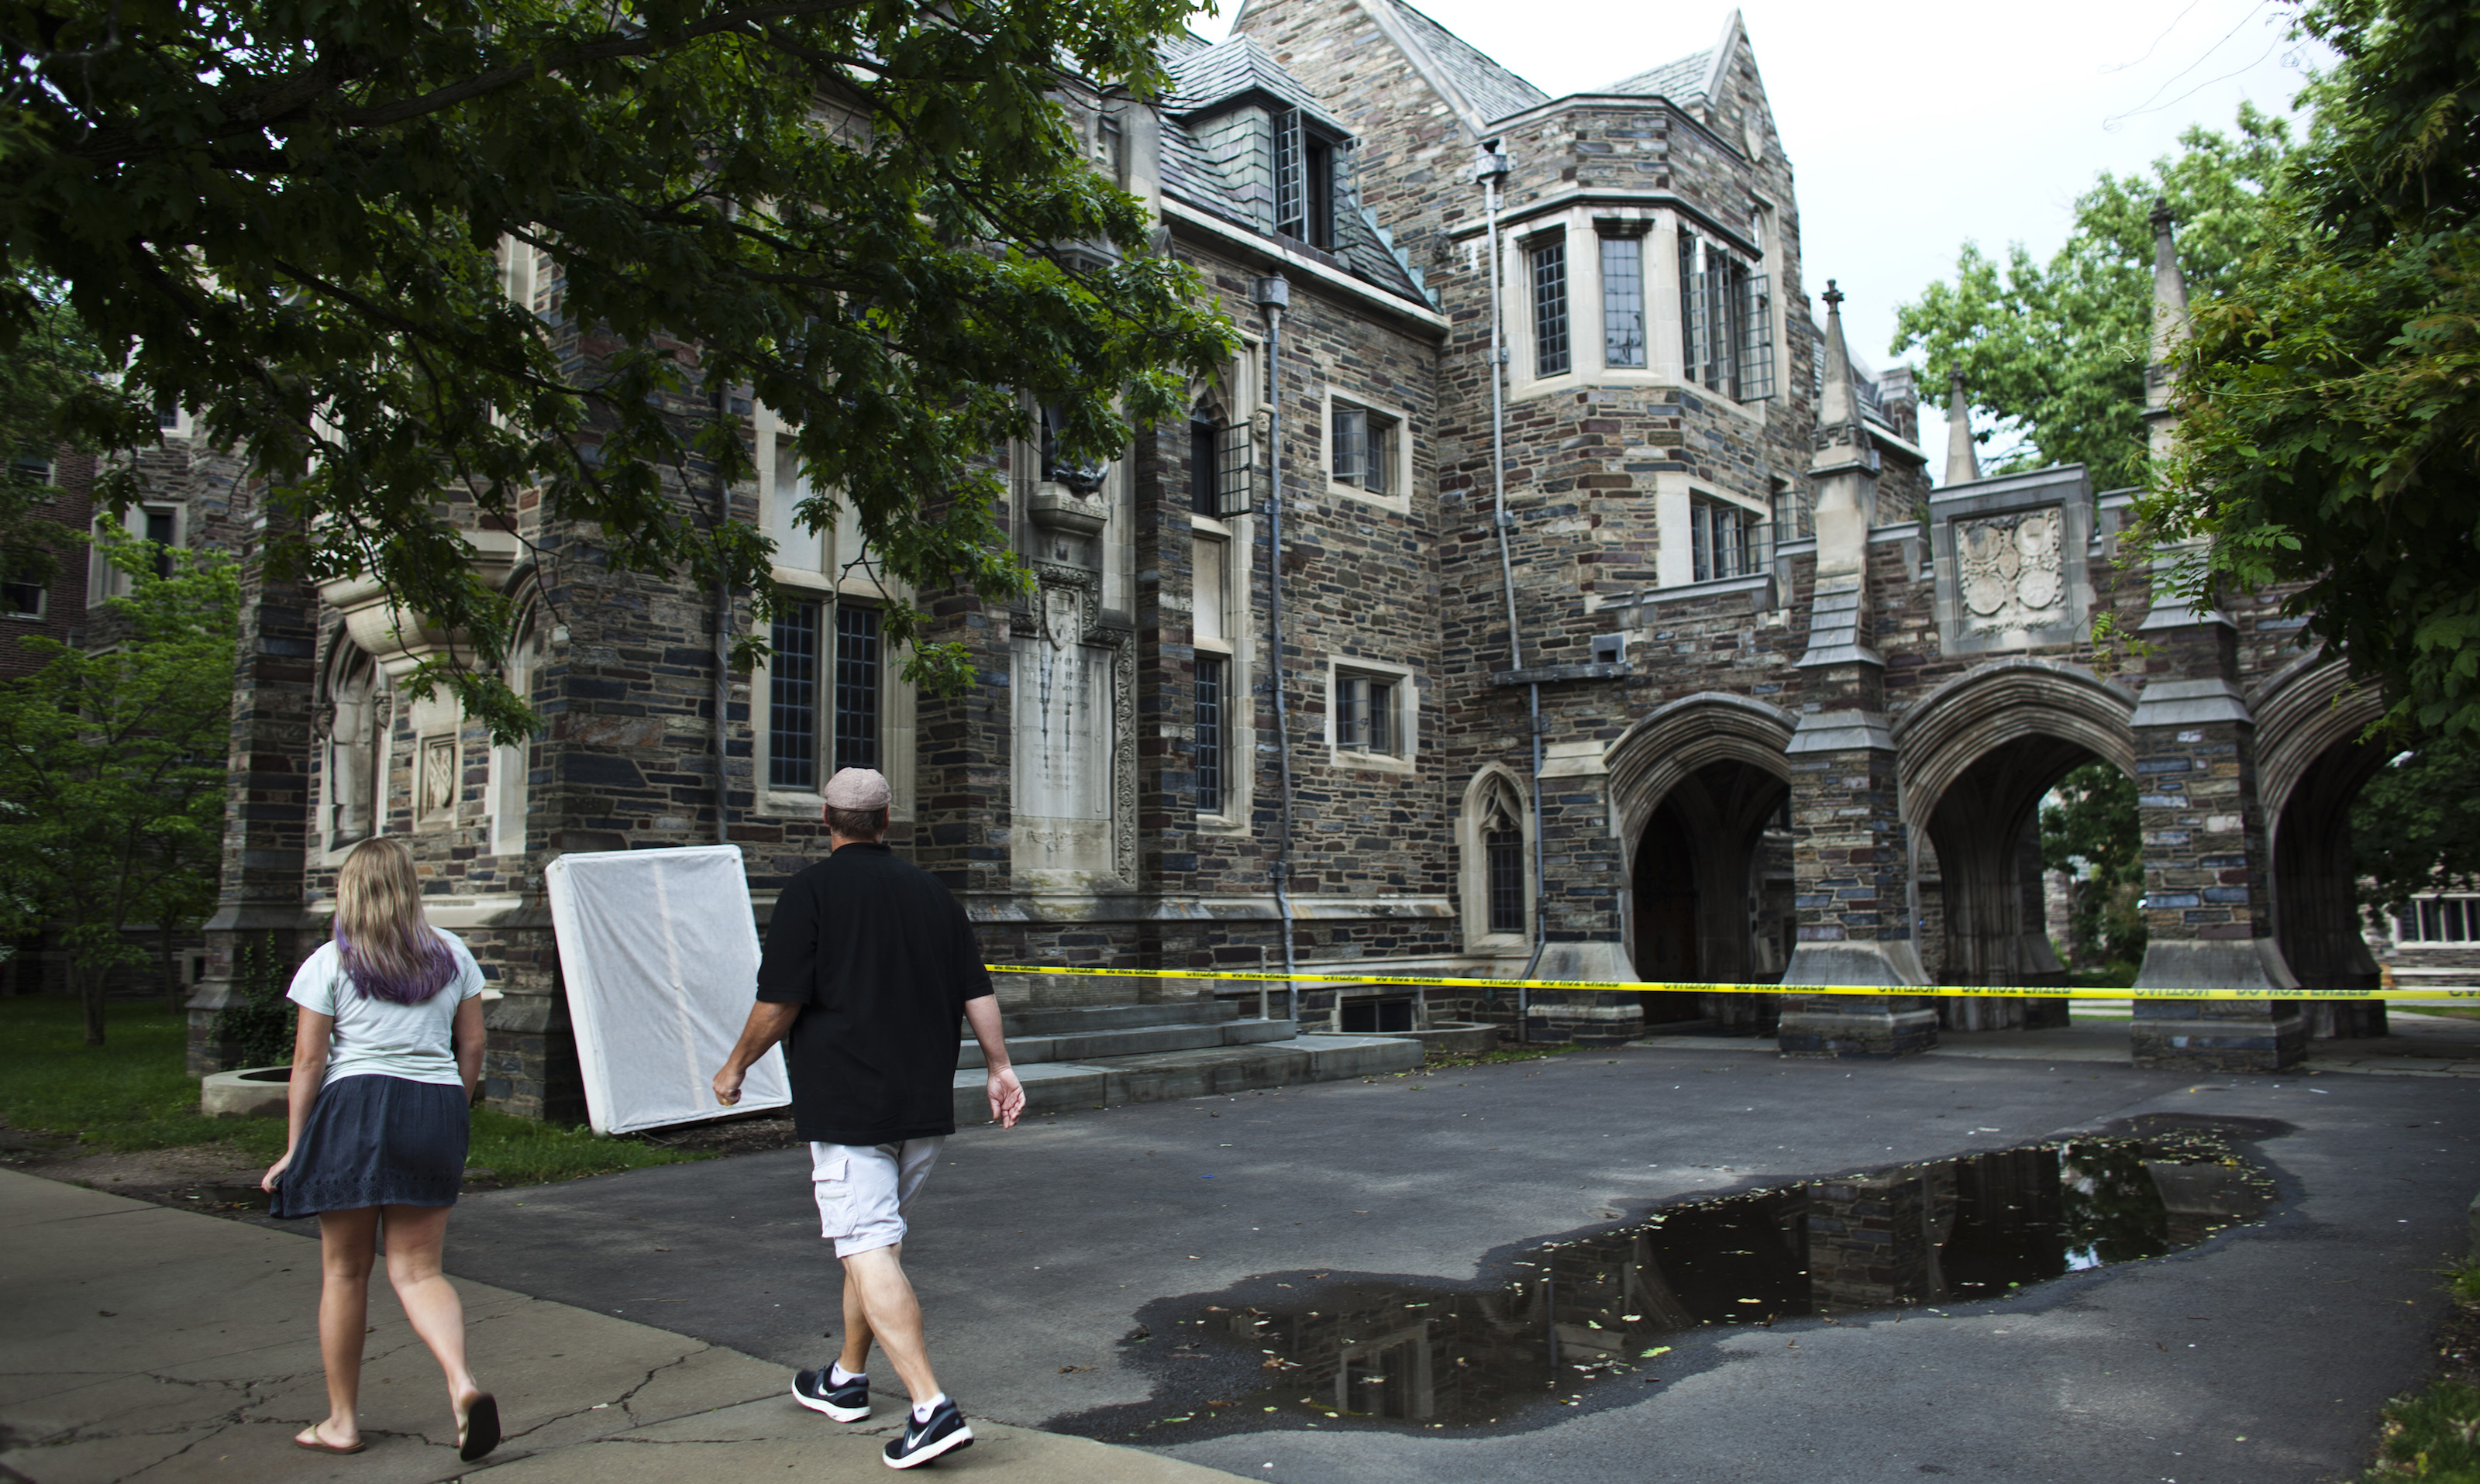 People walk pass a caution tape at one of the entrance of Princeton University in New Jersey June 11, 2013. Princeton University evacuated its sprawling campus in New Jersey on Tuesday after receiving a bomb threat to multiple buildings, the latest of threats that have disrupted schools, government buildings and air travel across the country the past two days. REUTERS/Eduardo Munoz (UNITED STATES - Tags: CRIME LAW EDUCATION) - GM1E96C0AIA01